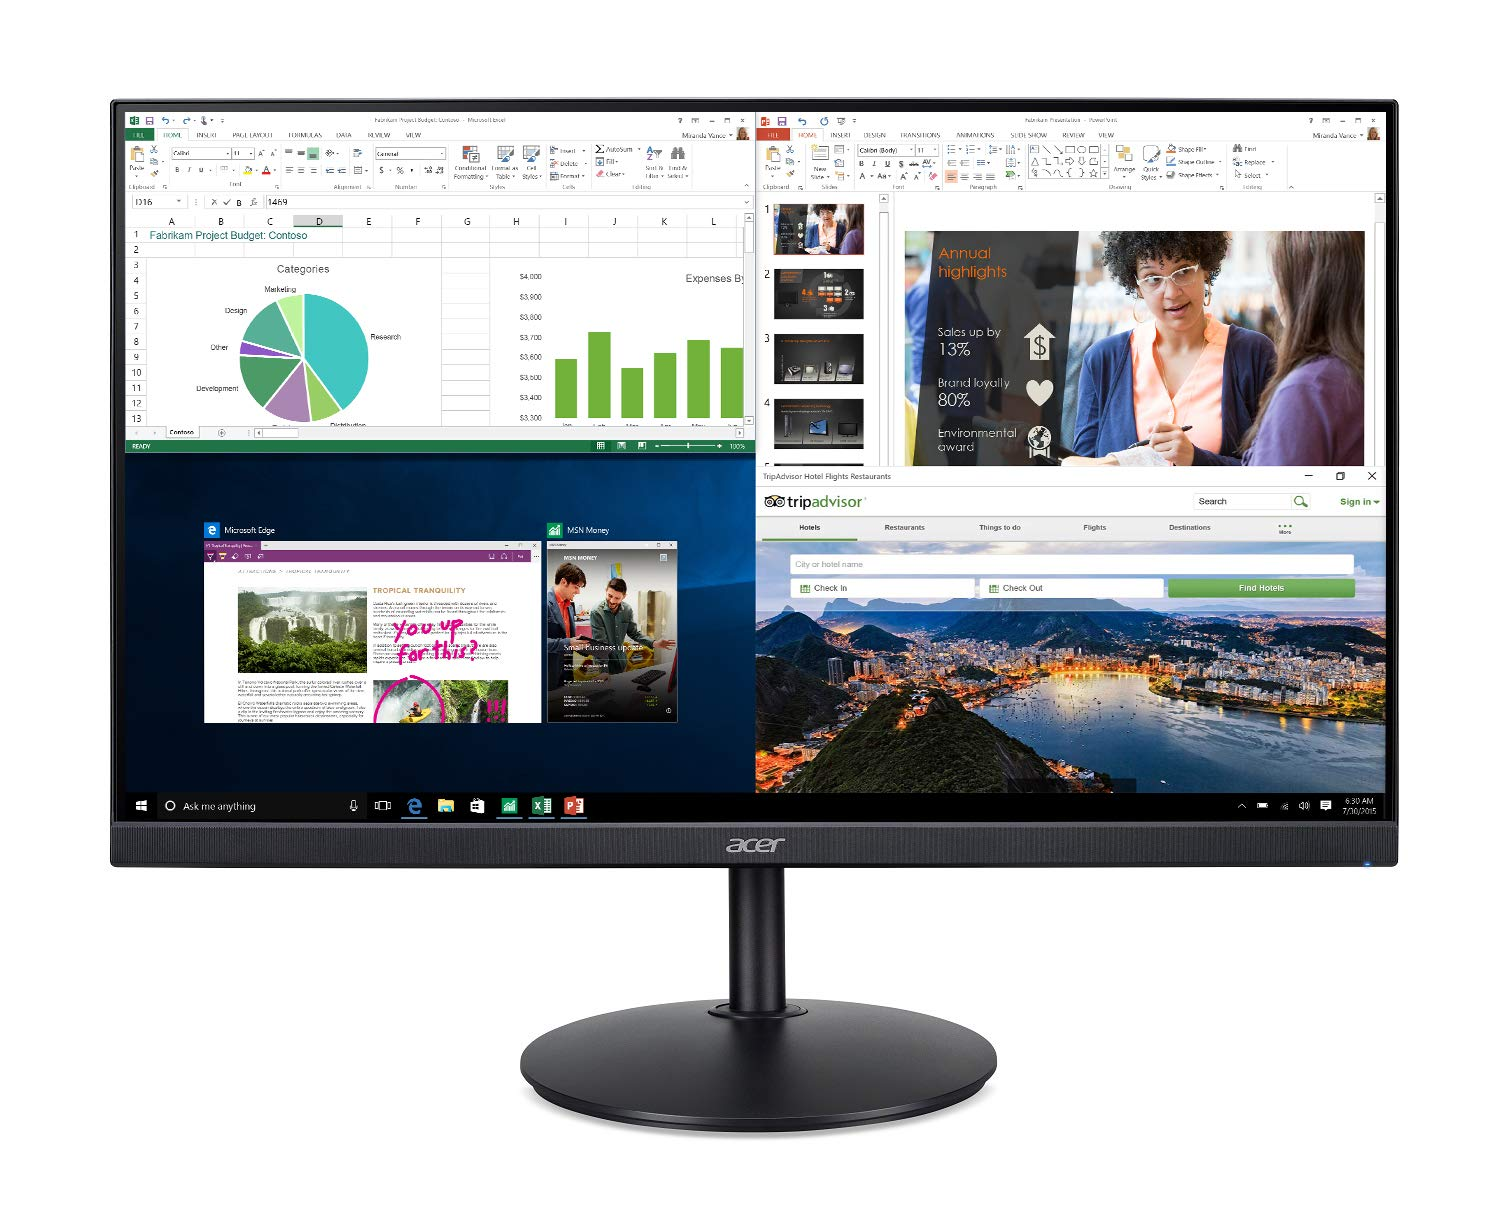 Acer CB272 bmiprx 27 inches Full HD (1920 x 1080) IPS Zero Frame Monitor with AMD Radeon FreeSync Technology - 1ms VRB & 75Hz Refresh (Display, HDMI & VGA port),Black